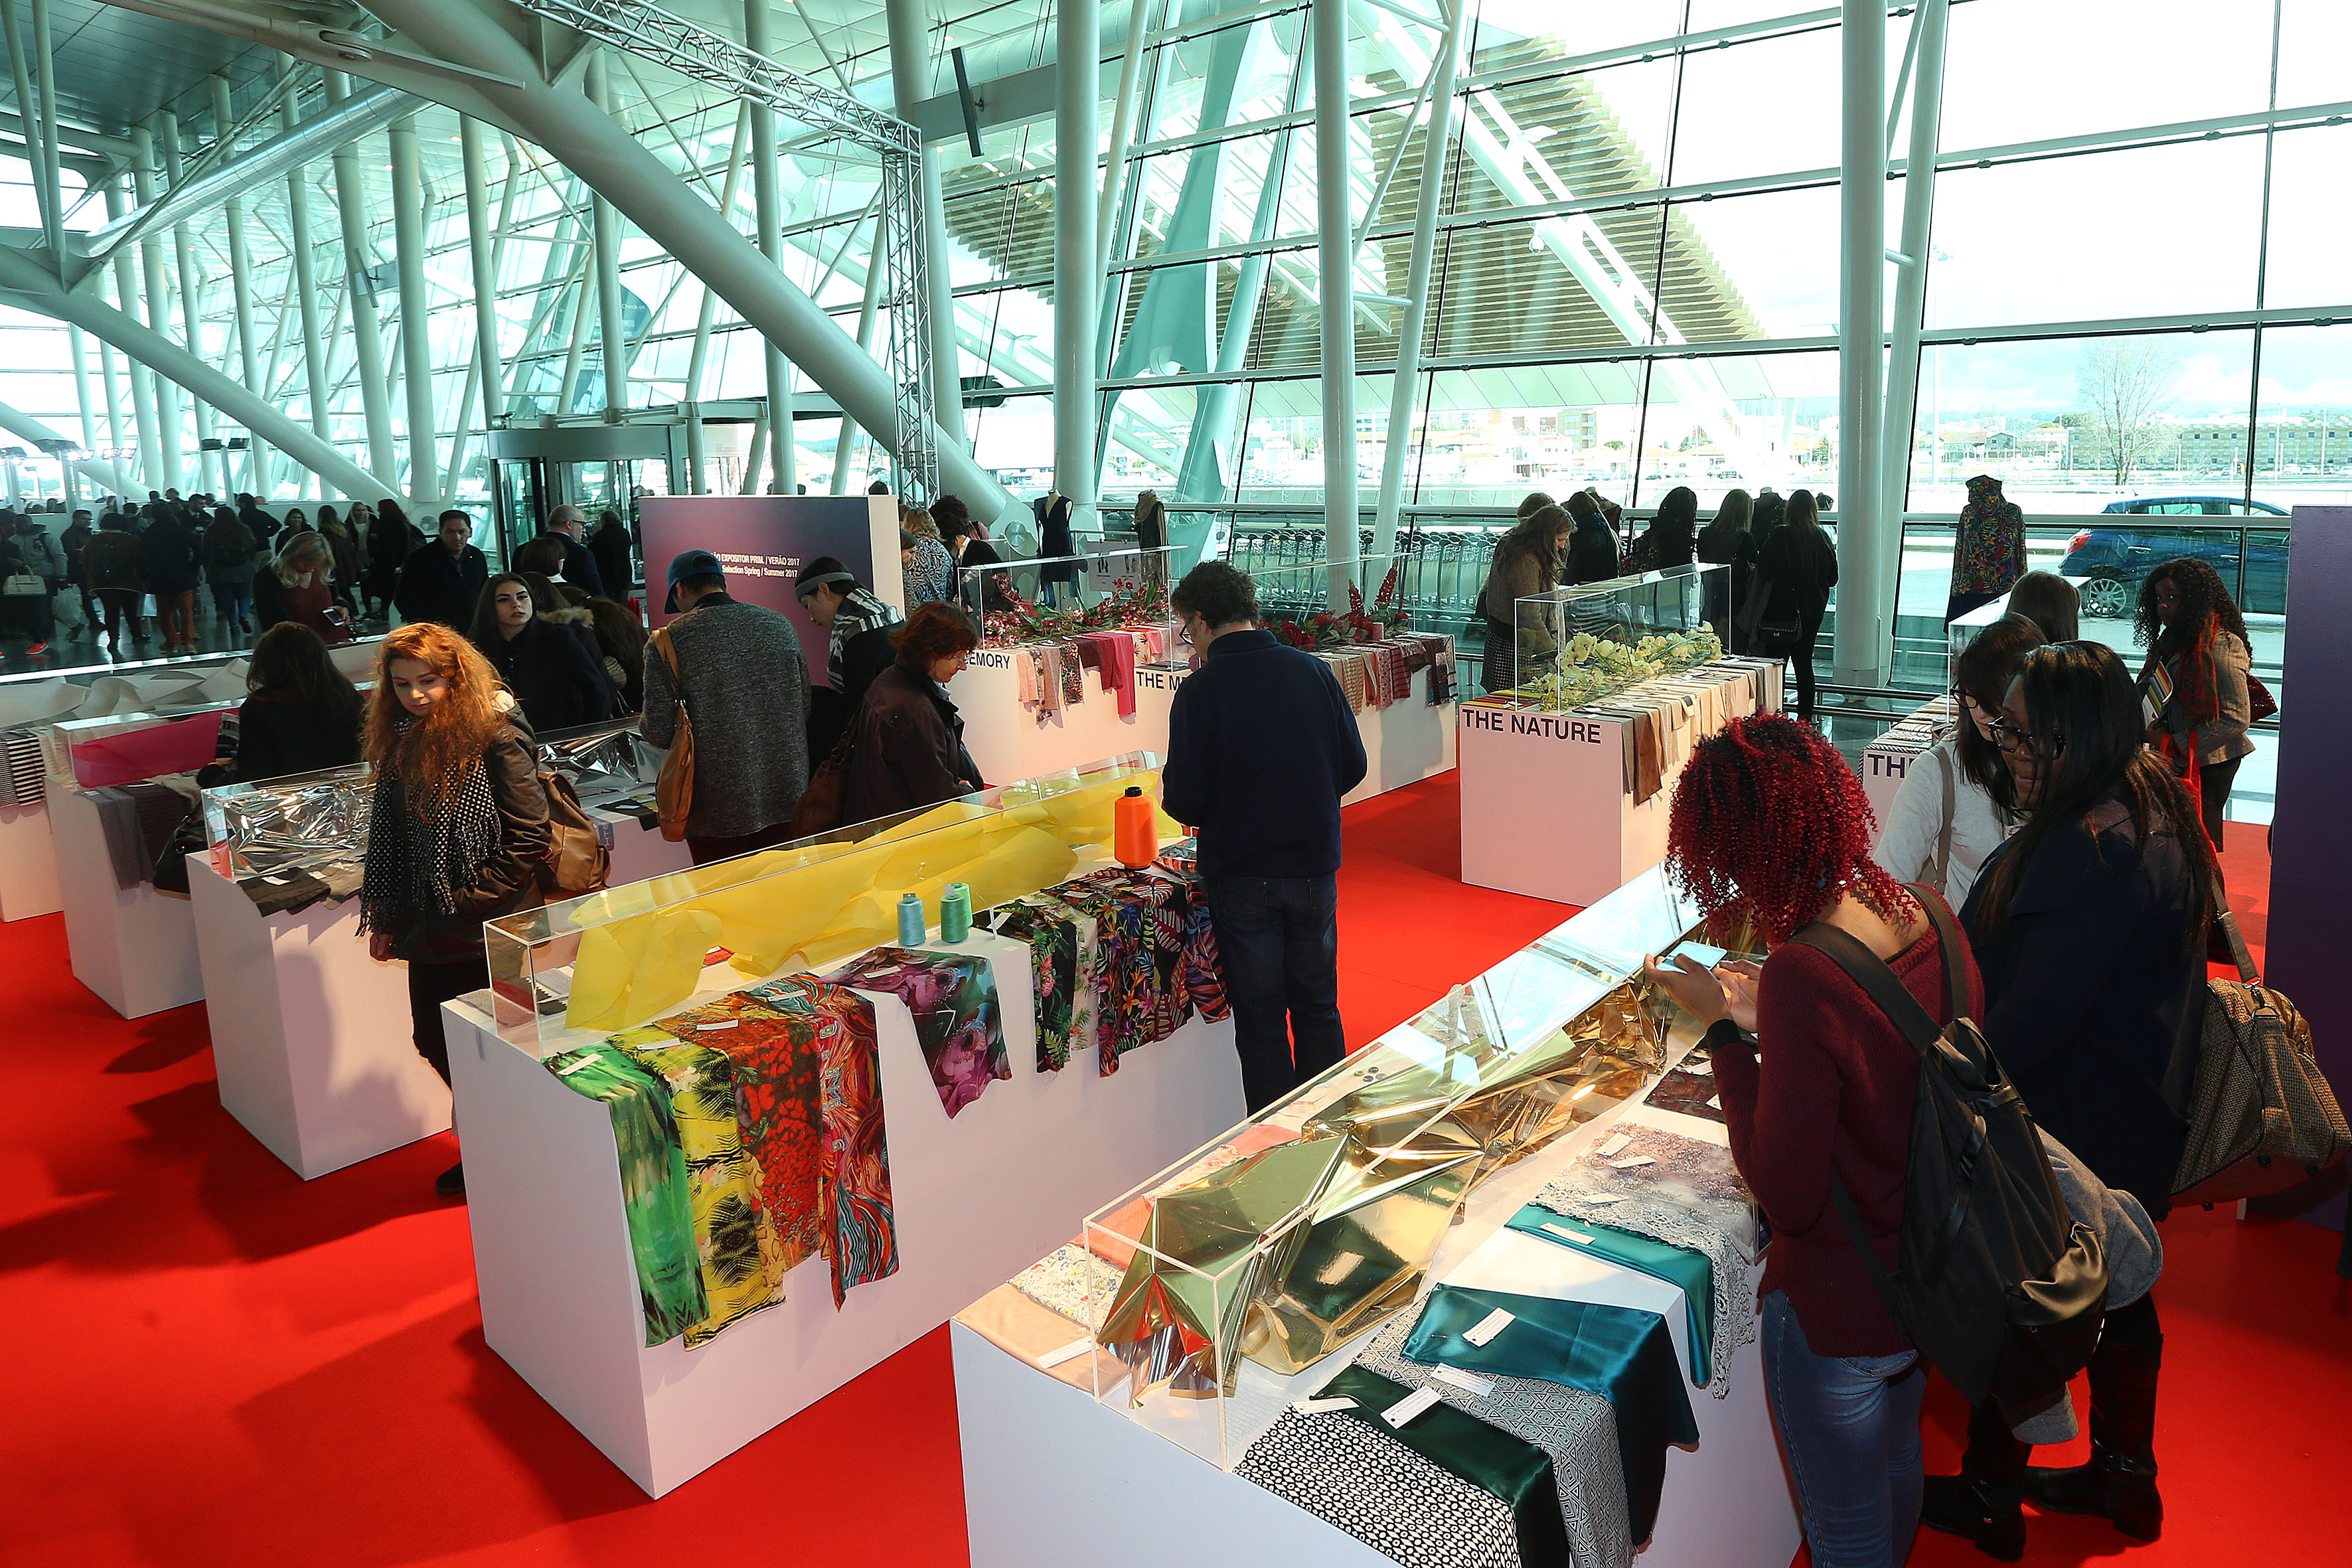 The 47th edition of Modtissimo fashion and textiles trade show was located in Porto's Francisco Sà Carneiro airport from 24-25 February 2016. © Elizia Volkmann